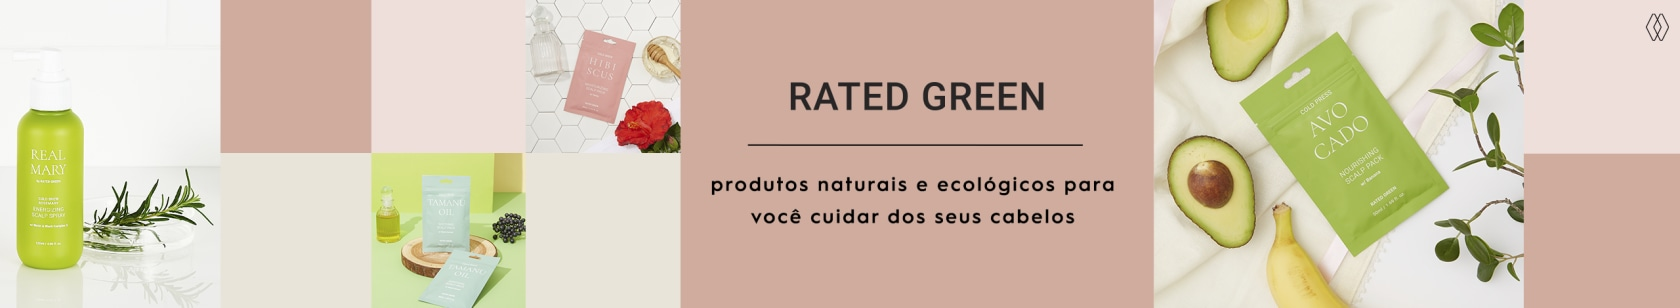 RATED GREEN | AMARO